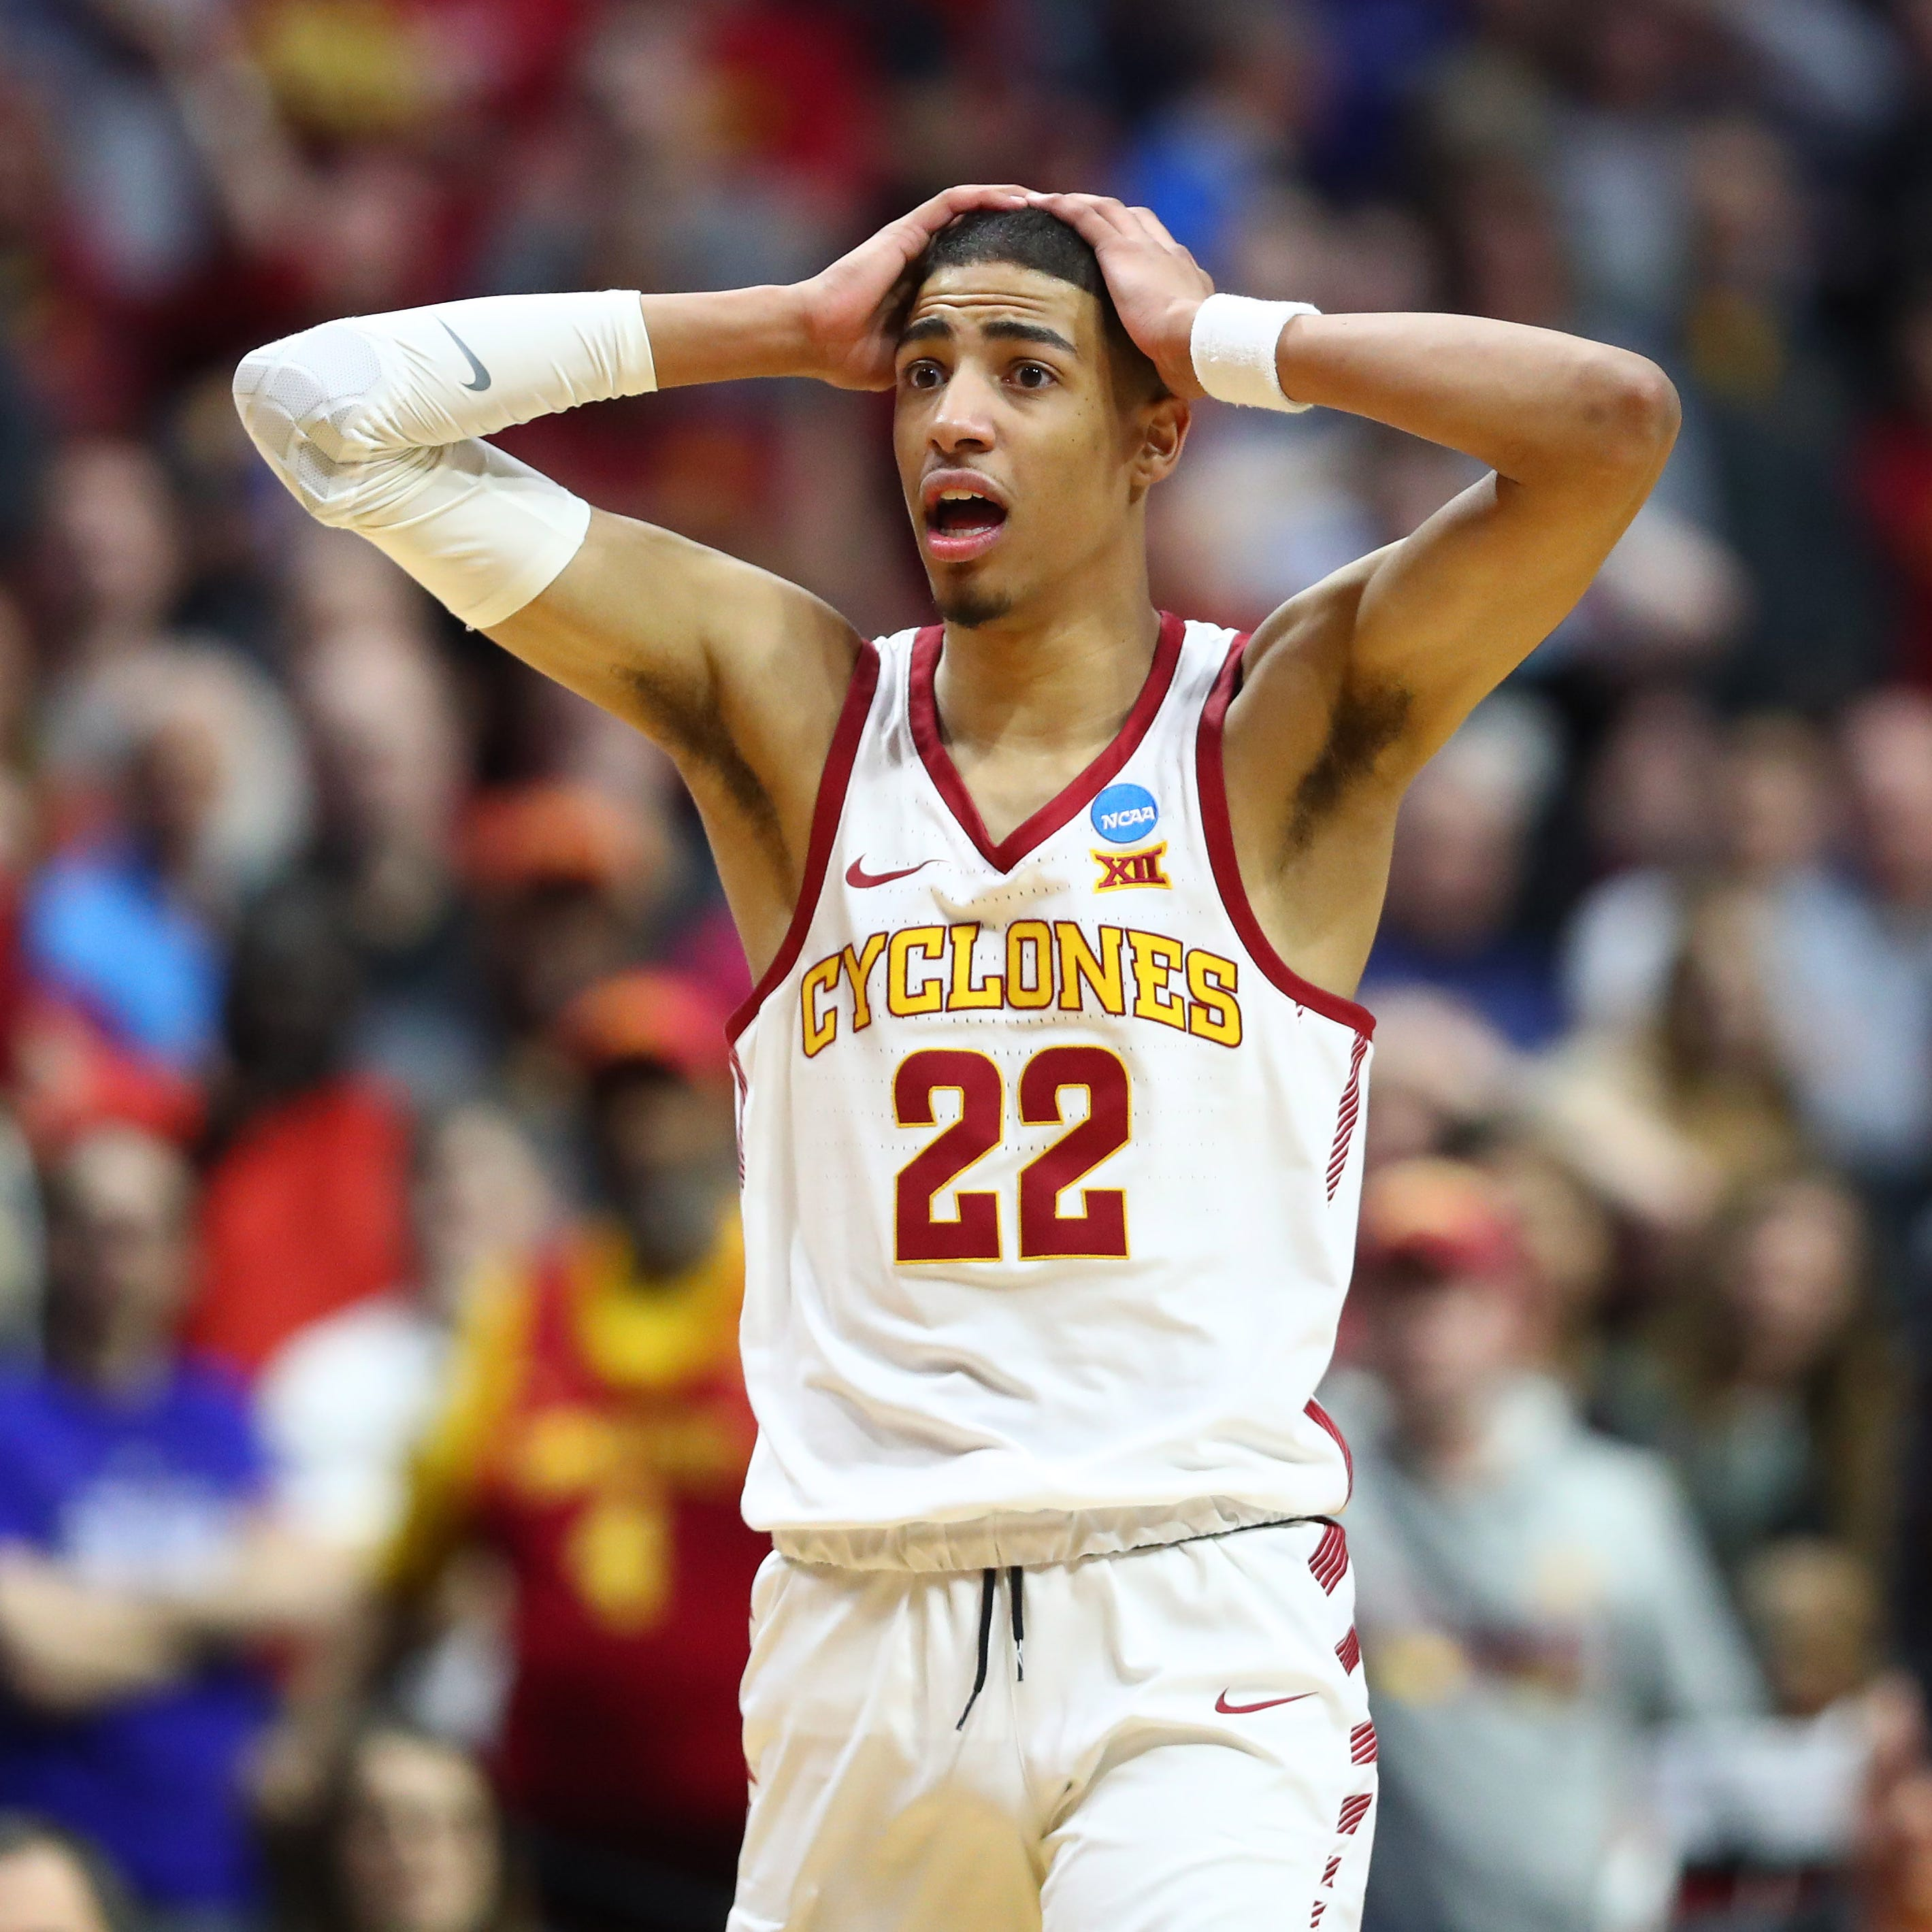 Peterson: Iowa State hung in until the end before bowing out to Ohio State in the NCAA Tournament